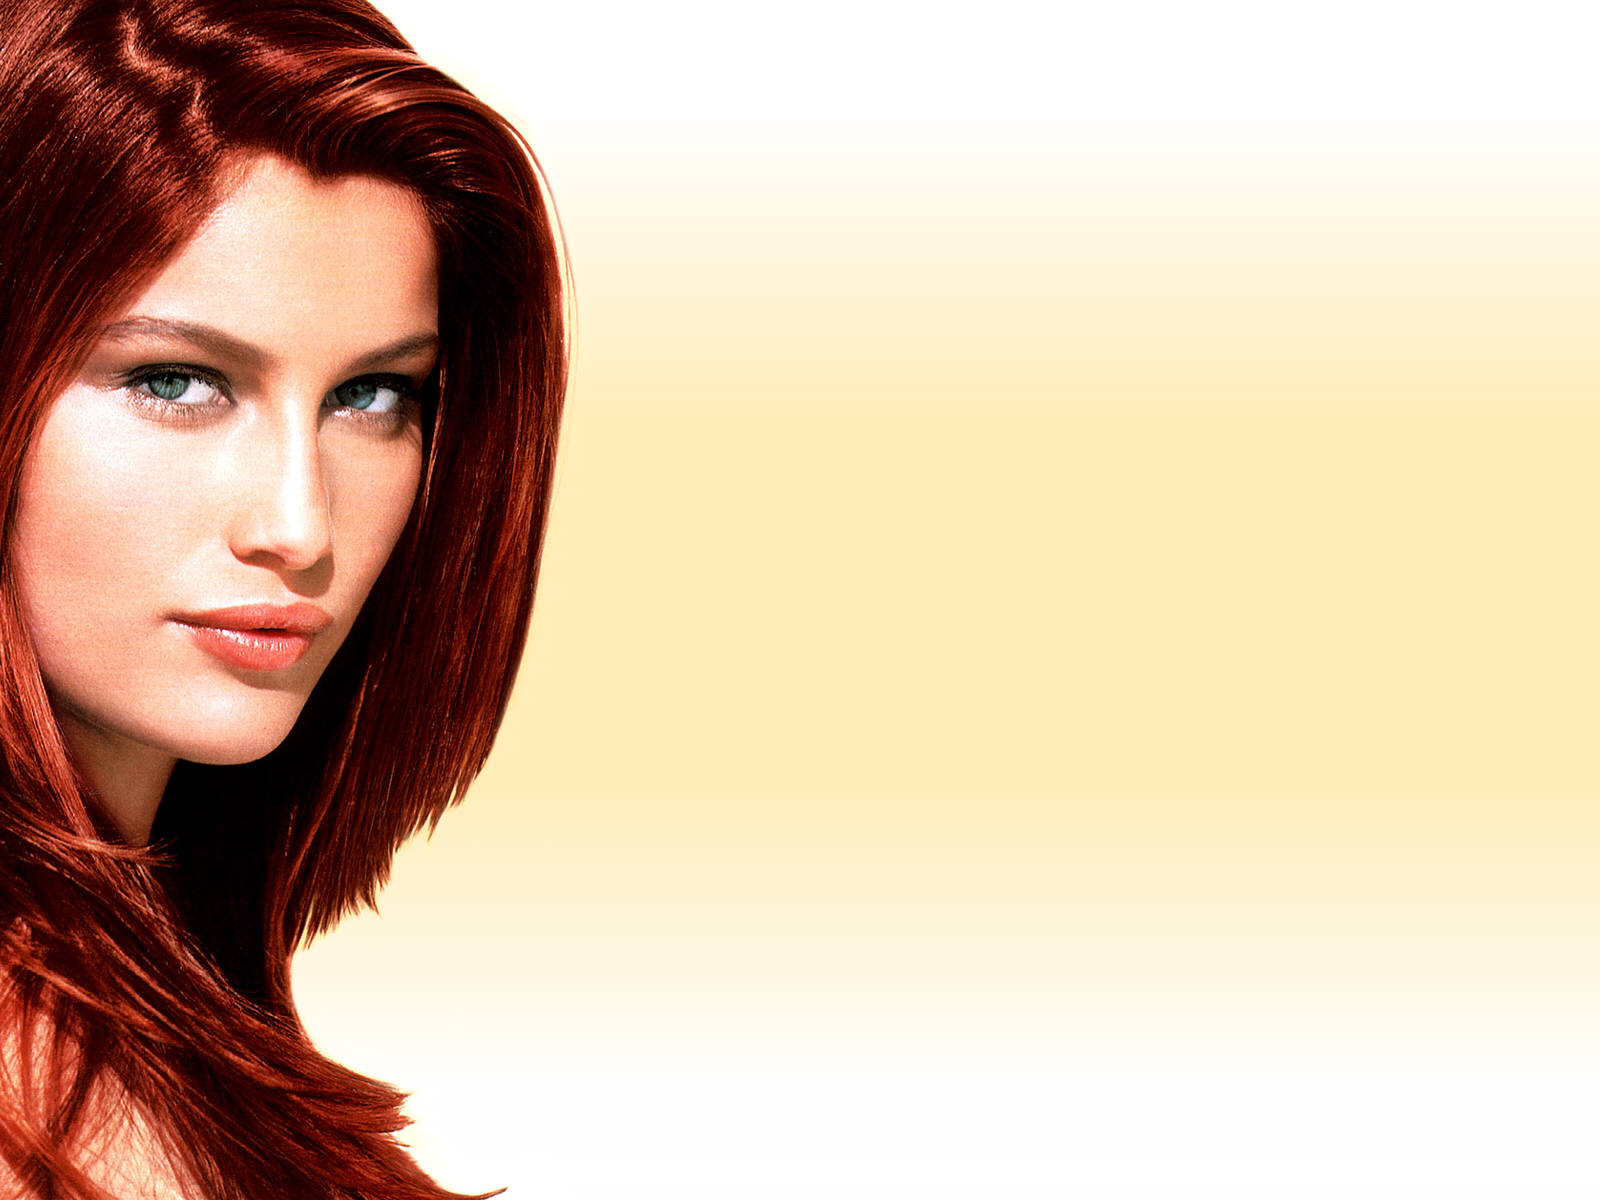 High Definition Wallpaper Hairstyle Hd Wallpapers